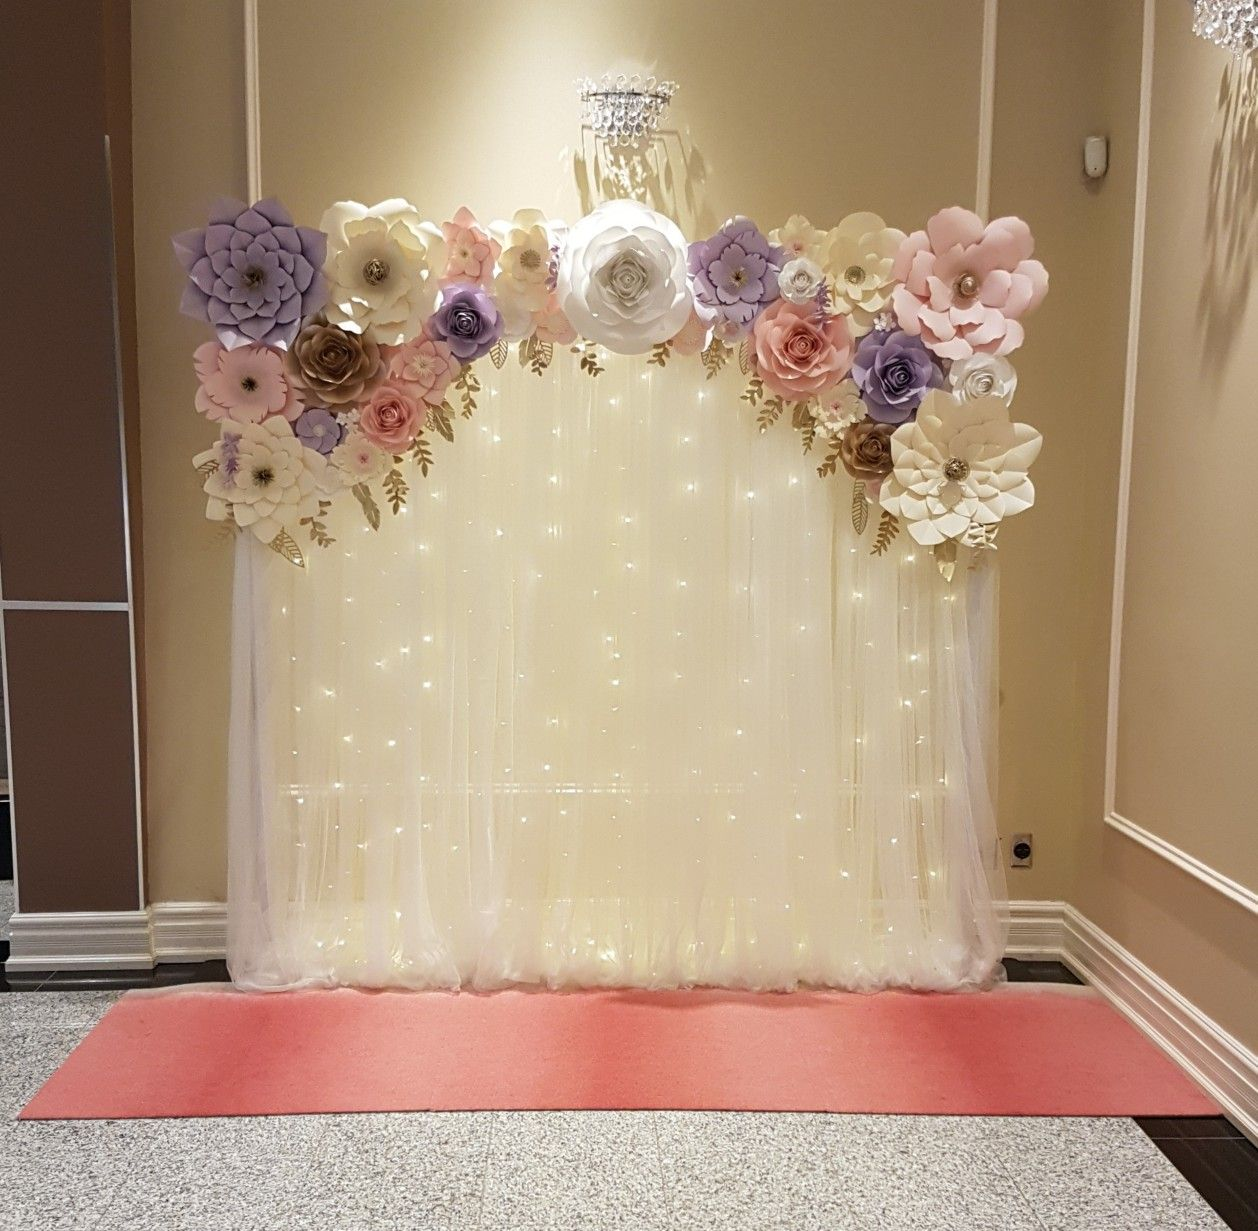 Pink And Purple Paper Flower Backdrop With Fairy Lights For A